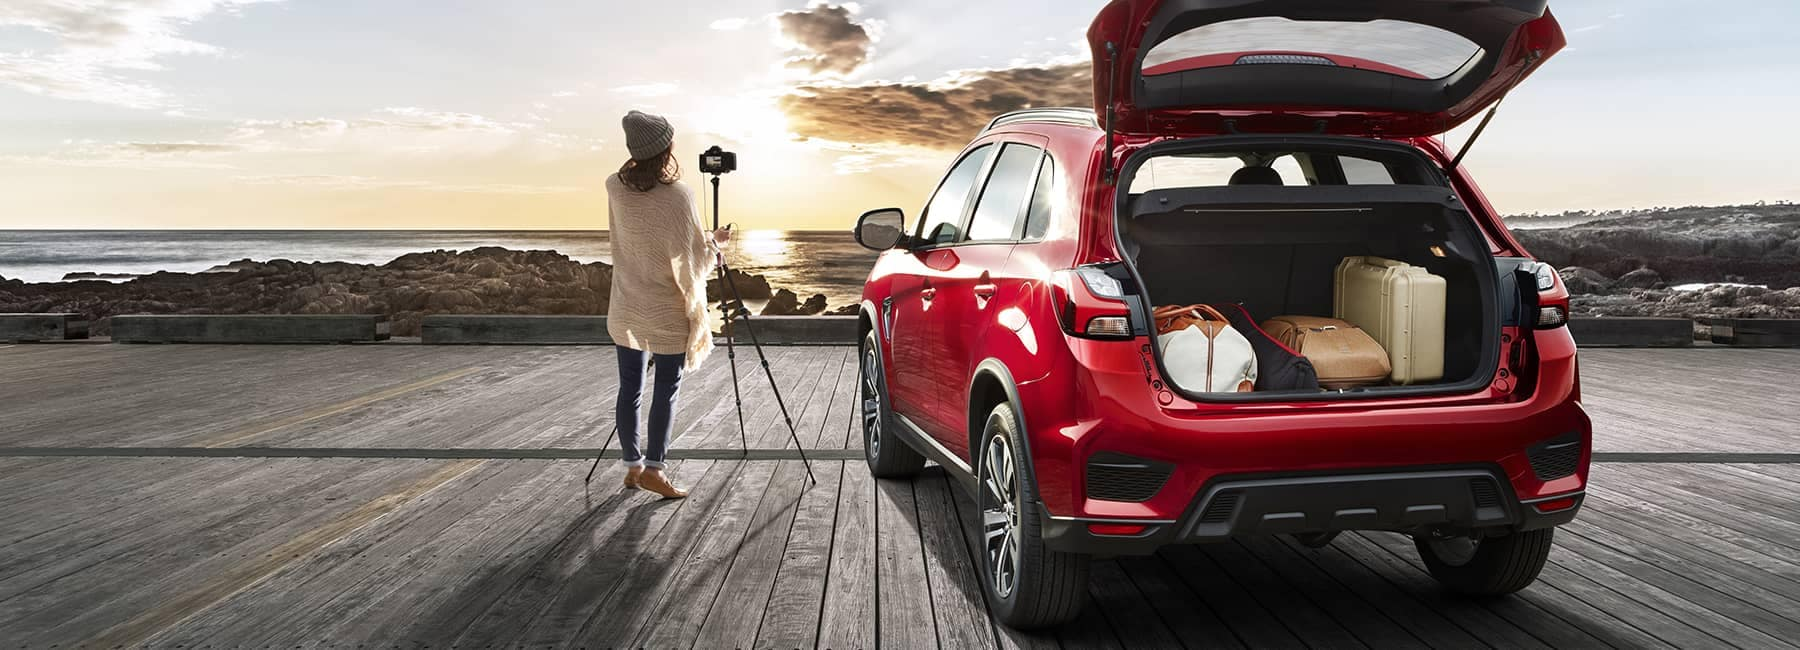 2020 Mitsubishi Outlander Sport parked at beach with woman taking photographs